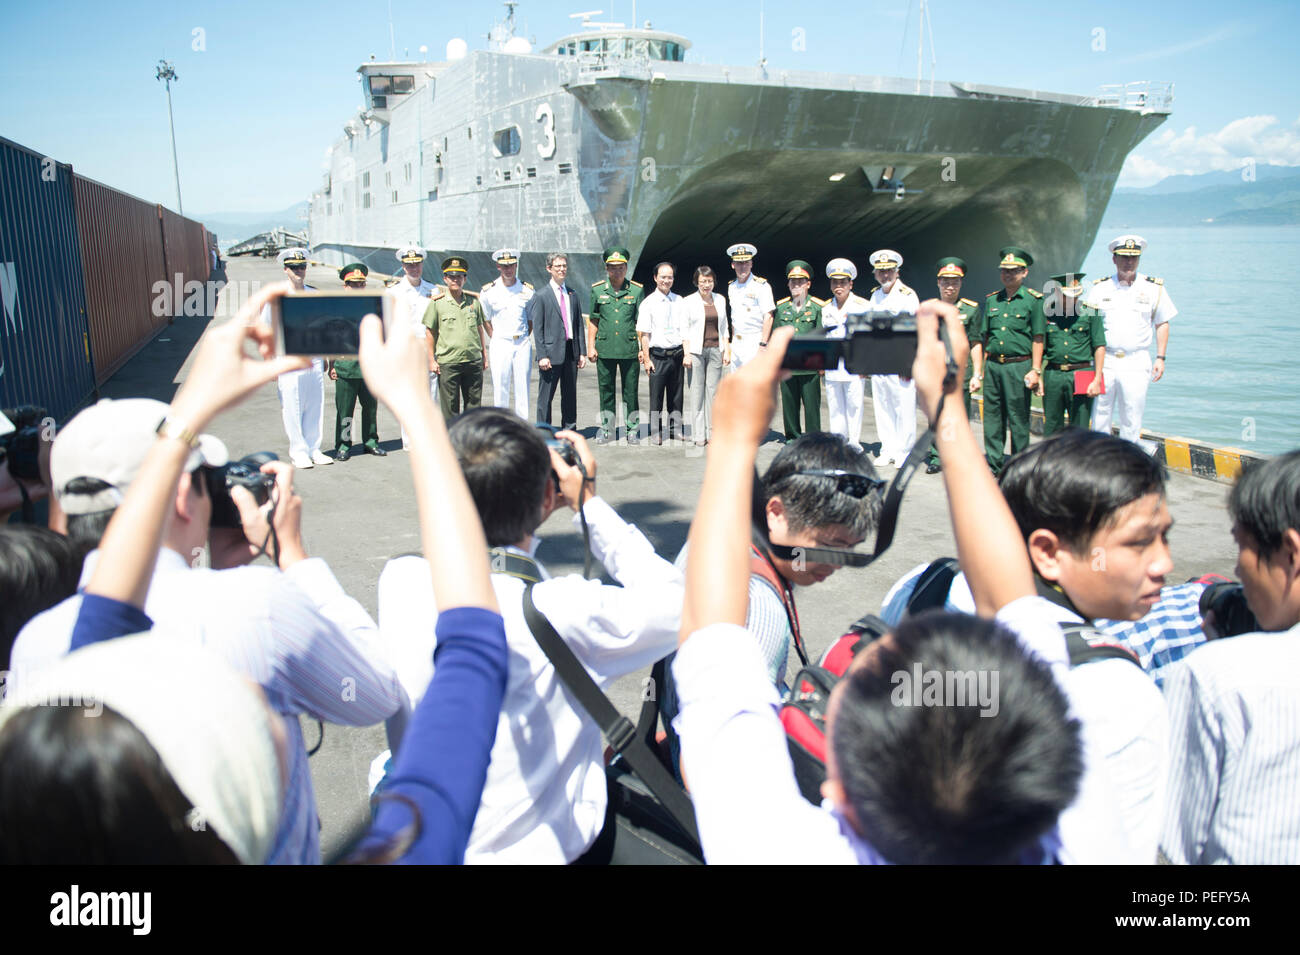 150817-N-MK341-141 DA NANG, Vietnam (Aug. 17, 2015) – Pacific Partnership leadership alongside local government officials pause for a photo in front of the Military Sealift Command joint high speed vessel USNS Millinocket (JHSV 3). Vietnam is the fifth stop for Millinocket and embarked Task Force Forager. Millinocket and embarked Task Force Forager are serving as the secondary platform for Pacific Partnership, led by an expeditionary command element from the Navy's 30th Naval Construction Regiment (30 NCR) from Port Hueneme, Calif. Now in its 10th iteration, Pacific Partnership is the largest  - Stock Image